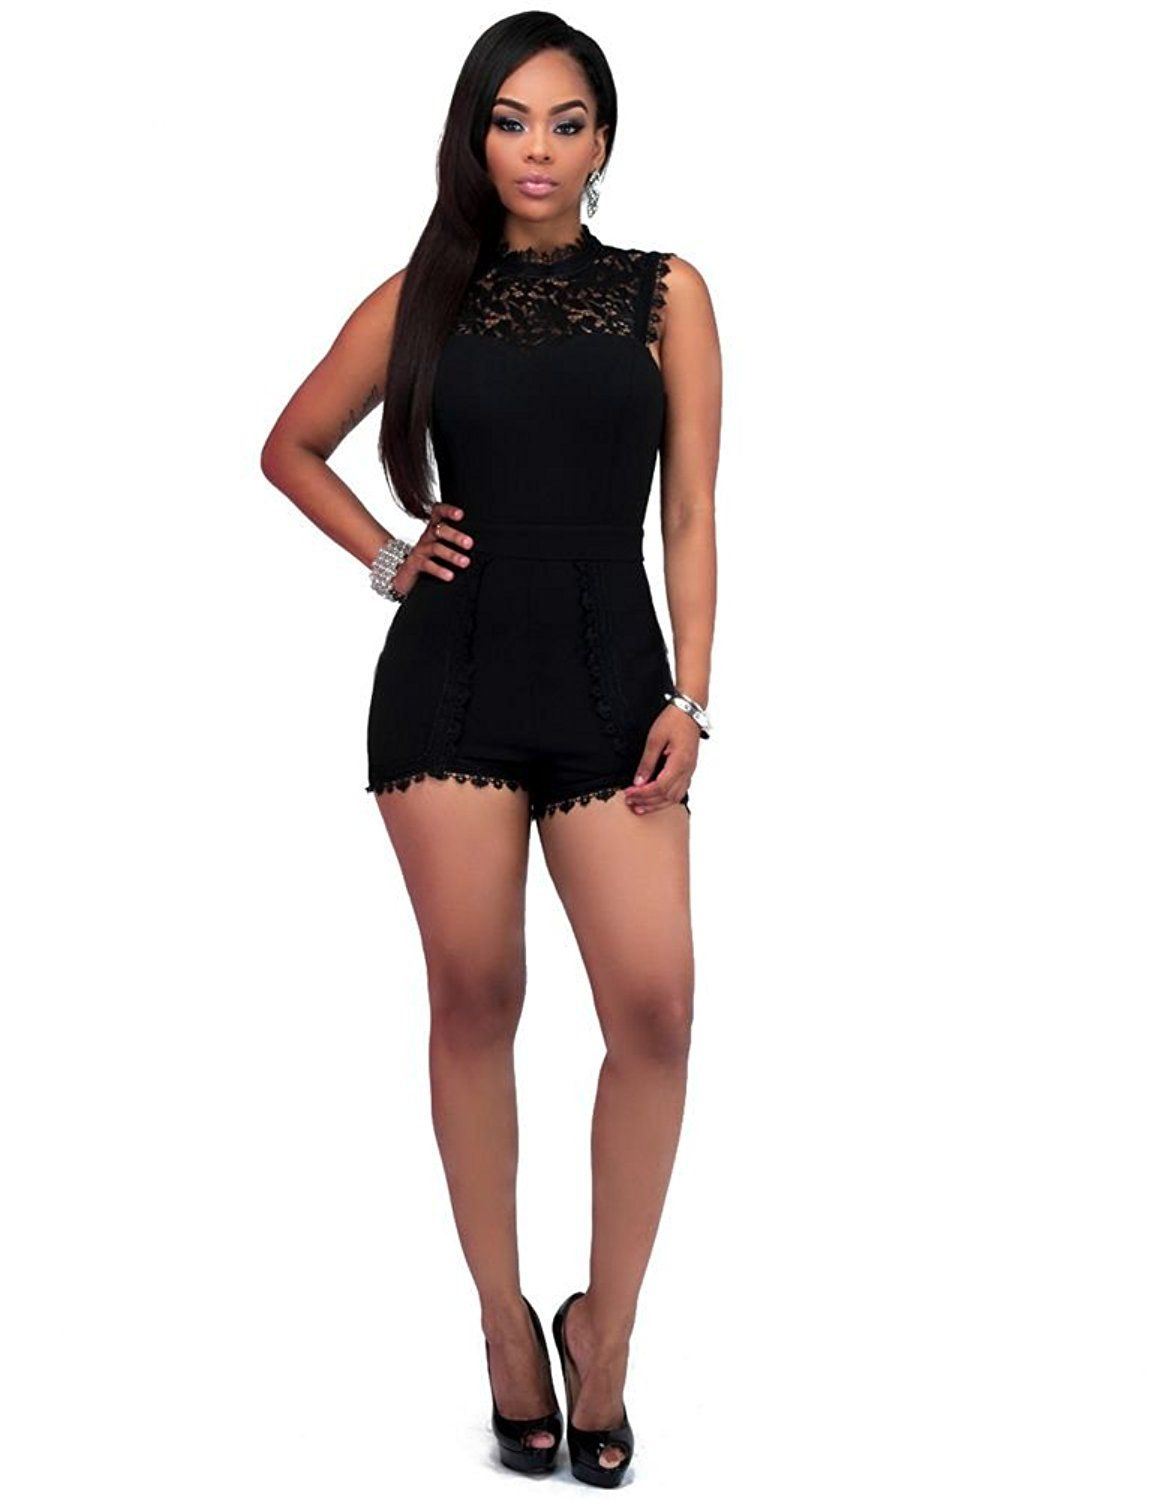 687ecac2ee9f Women Plus Size Crewneck Sleeveless Lace Clubwear Bodycon Short Jumpsuit  Romper    For more information